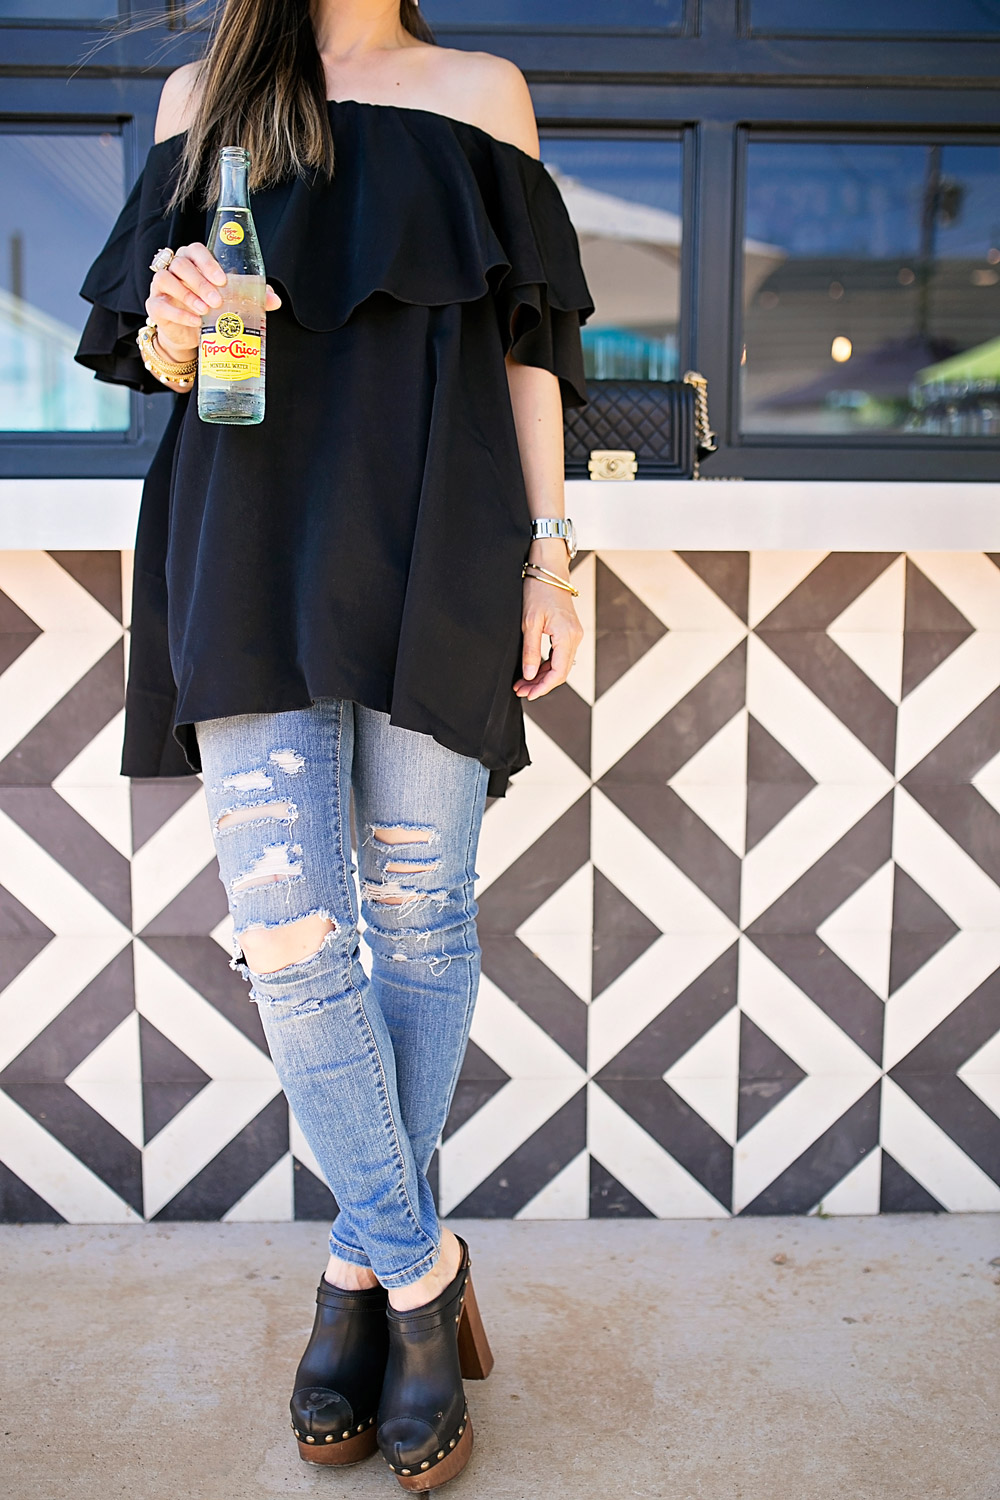 topo chico mineral water off the shoulder black ruffle top ripped jeans chanel platform clogs